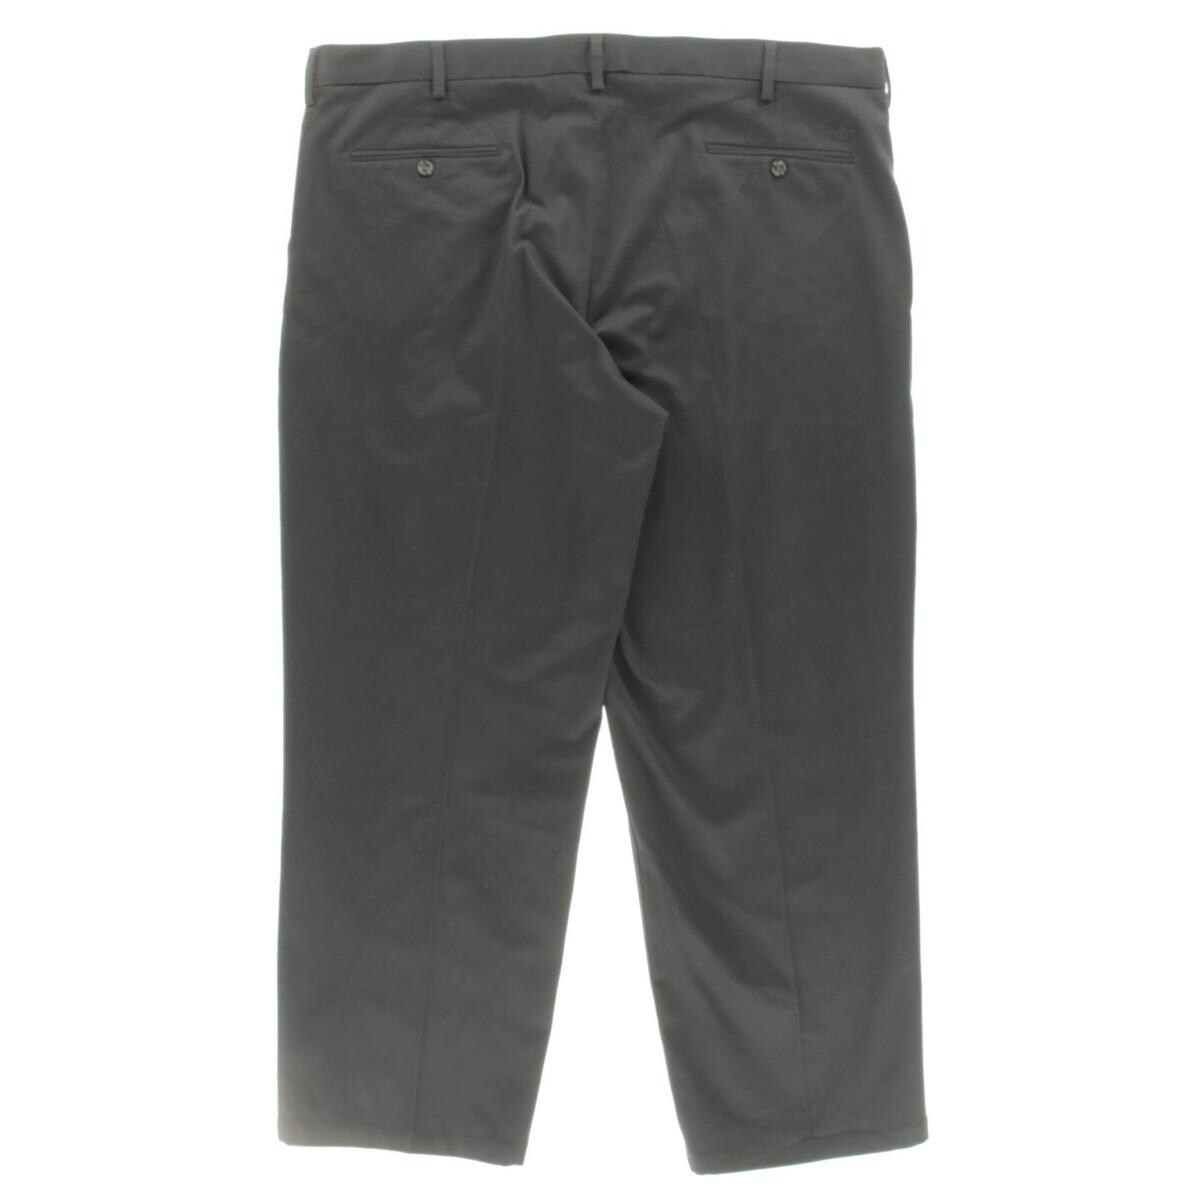 21fadd6558 Shop Dockers Mens Khaki Pants Relaxed Fit Signature - 42/30 - Free Shipping  On Orders Over $45 - Overstock.com - 18392315